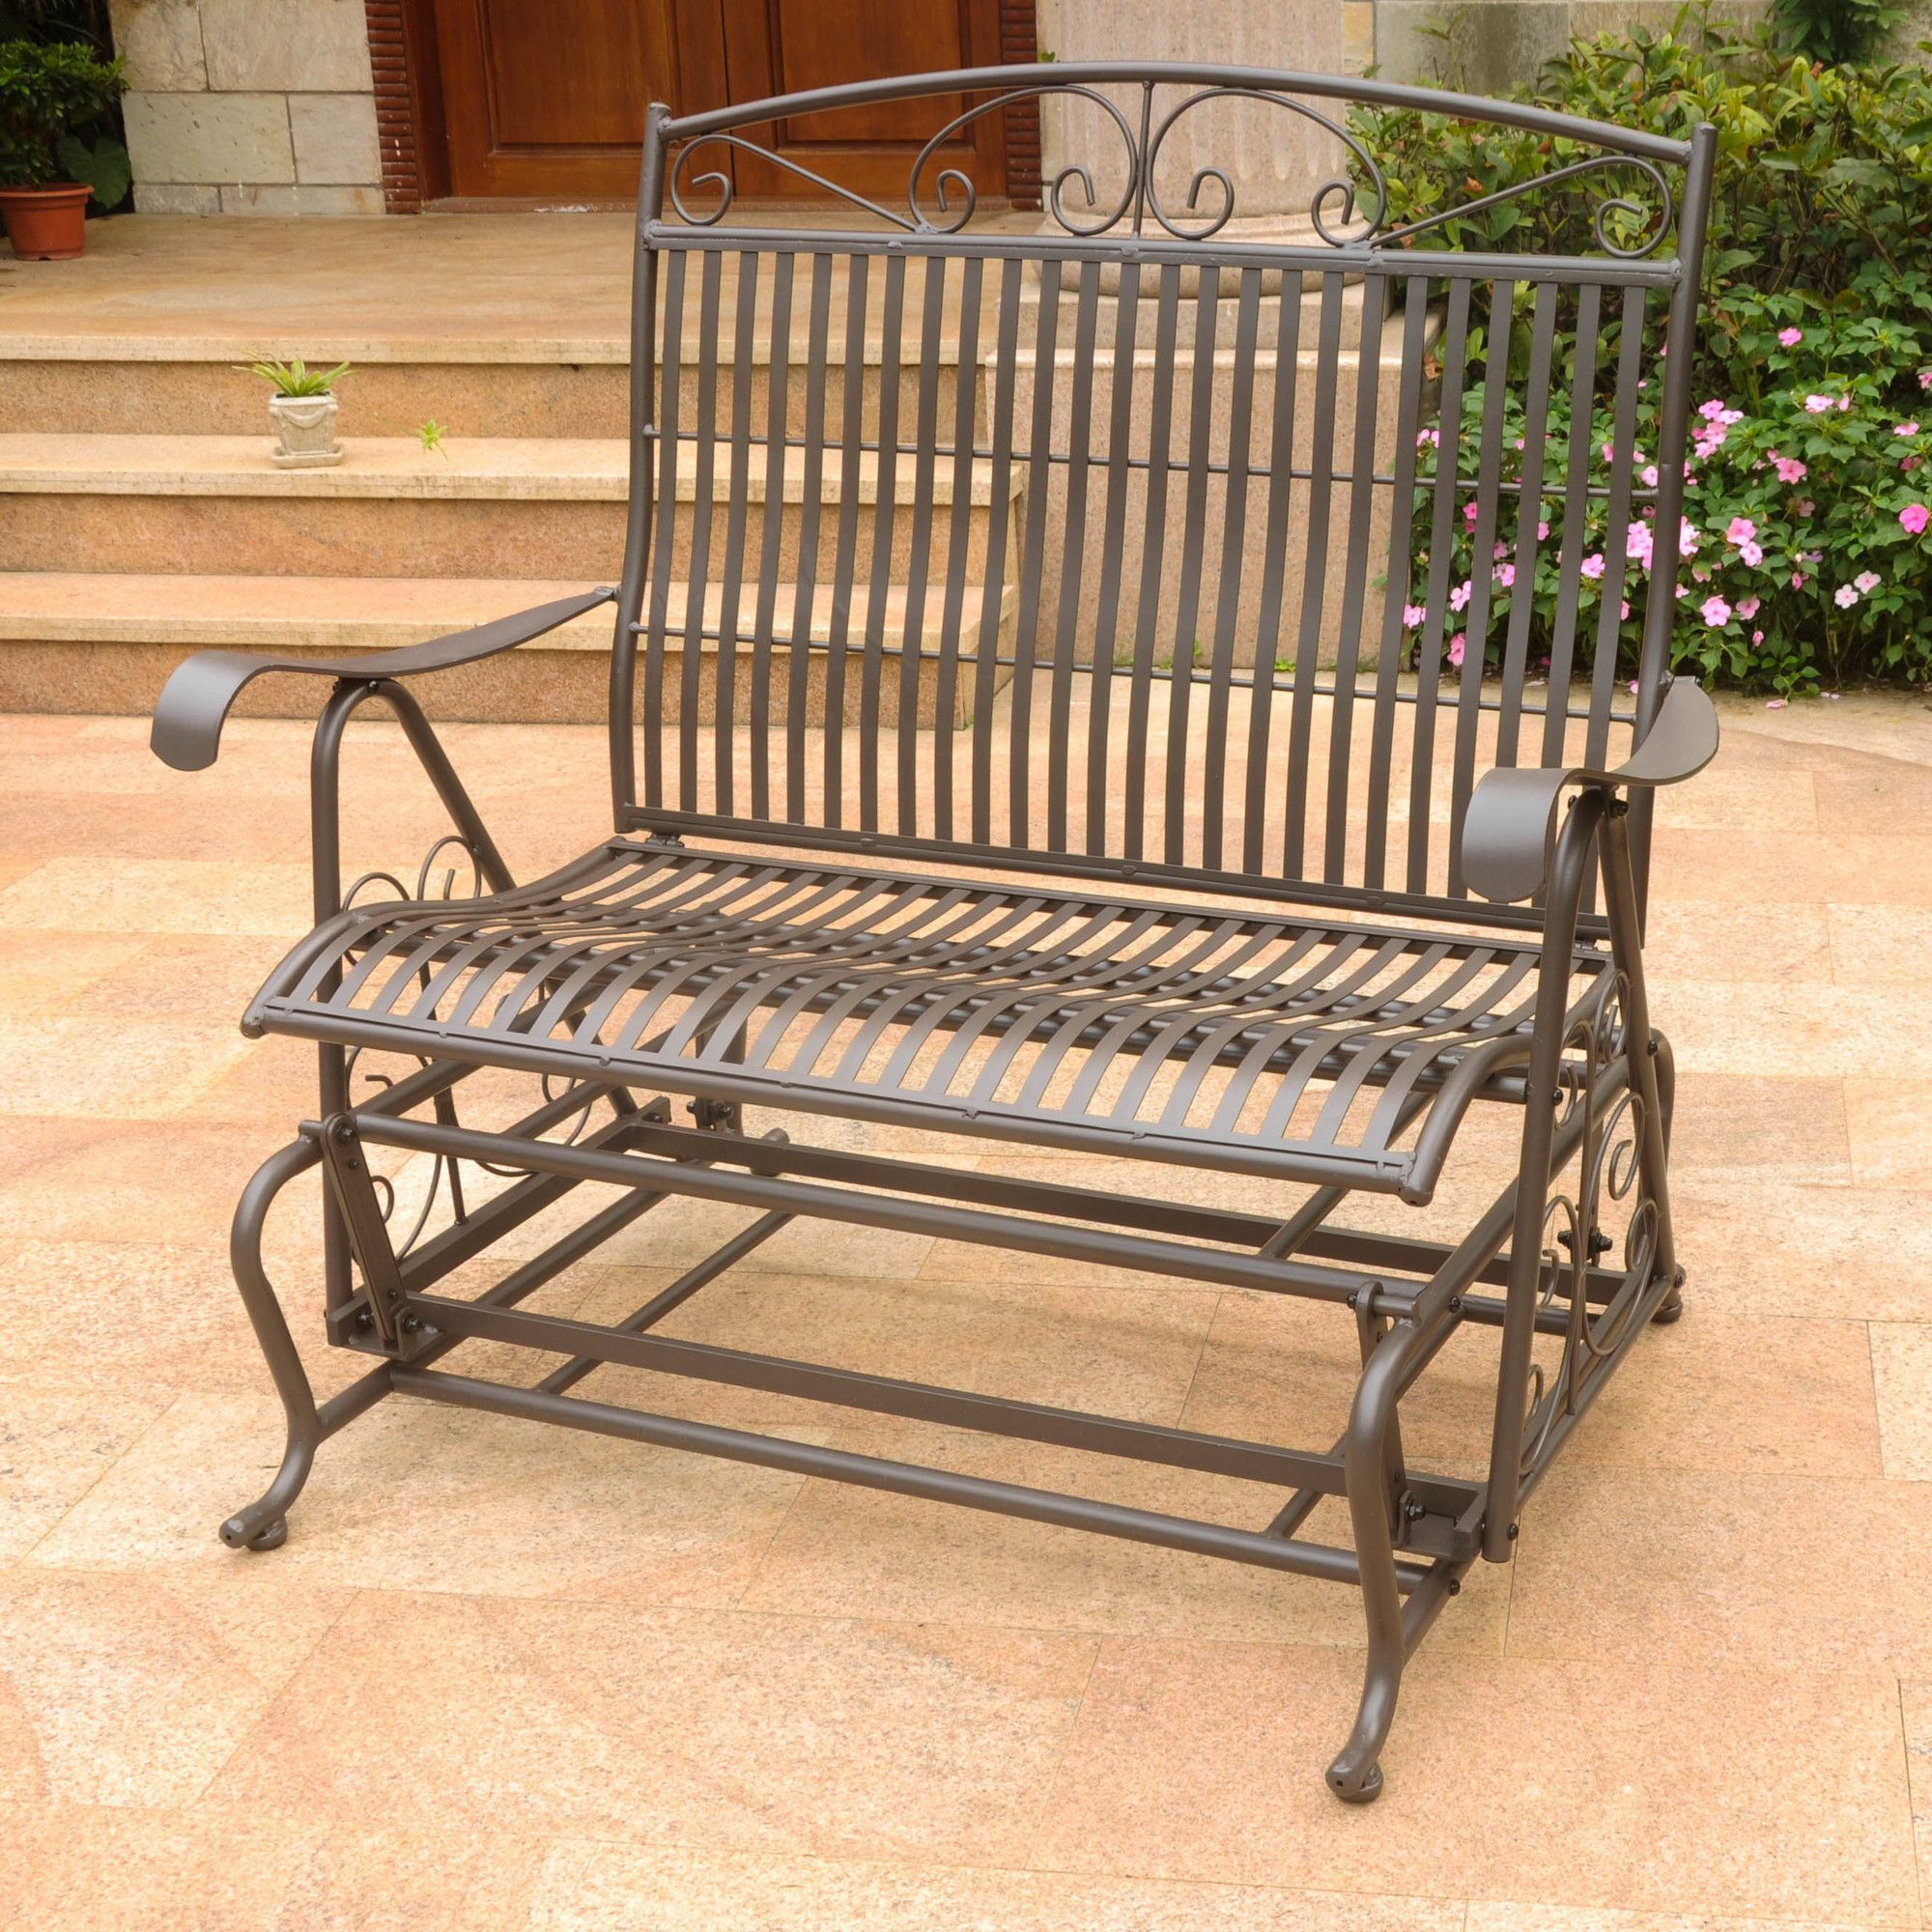 Rajesh Rocking Chair   Patio Glider, Outdoor Glider, Glider Pertaining To Metal Powder Coat Double Seat Glider Benches (View 3 of 25)